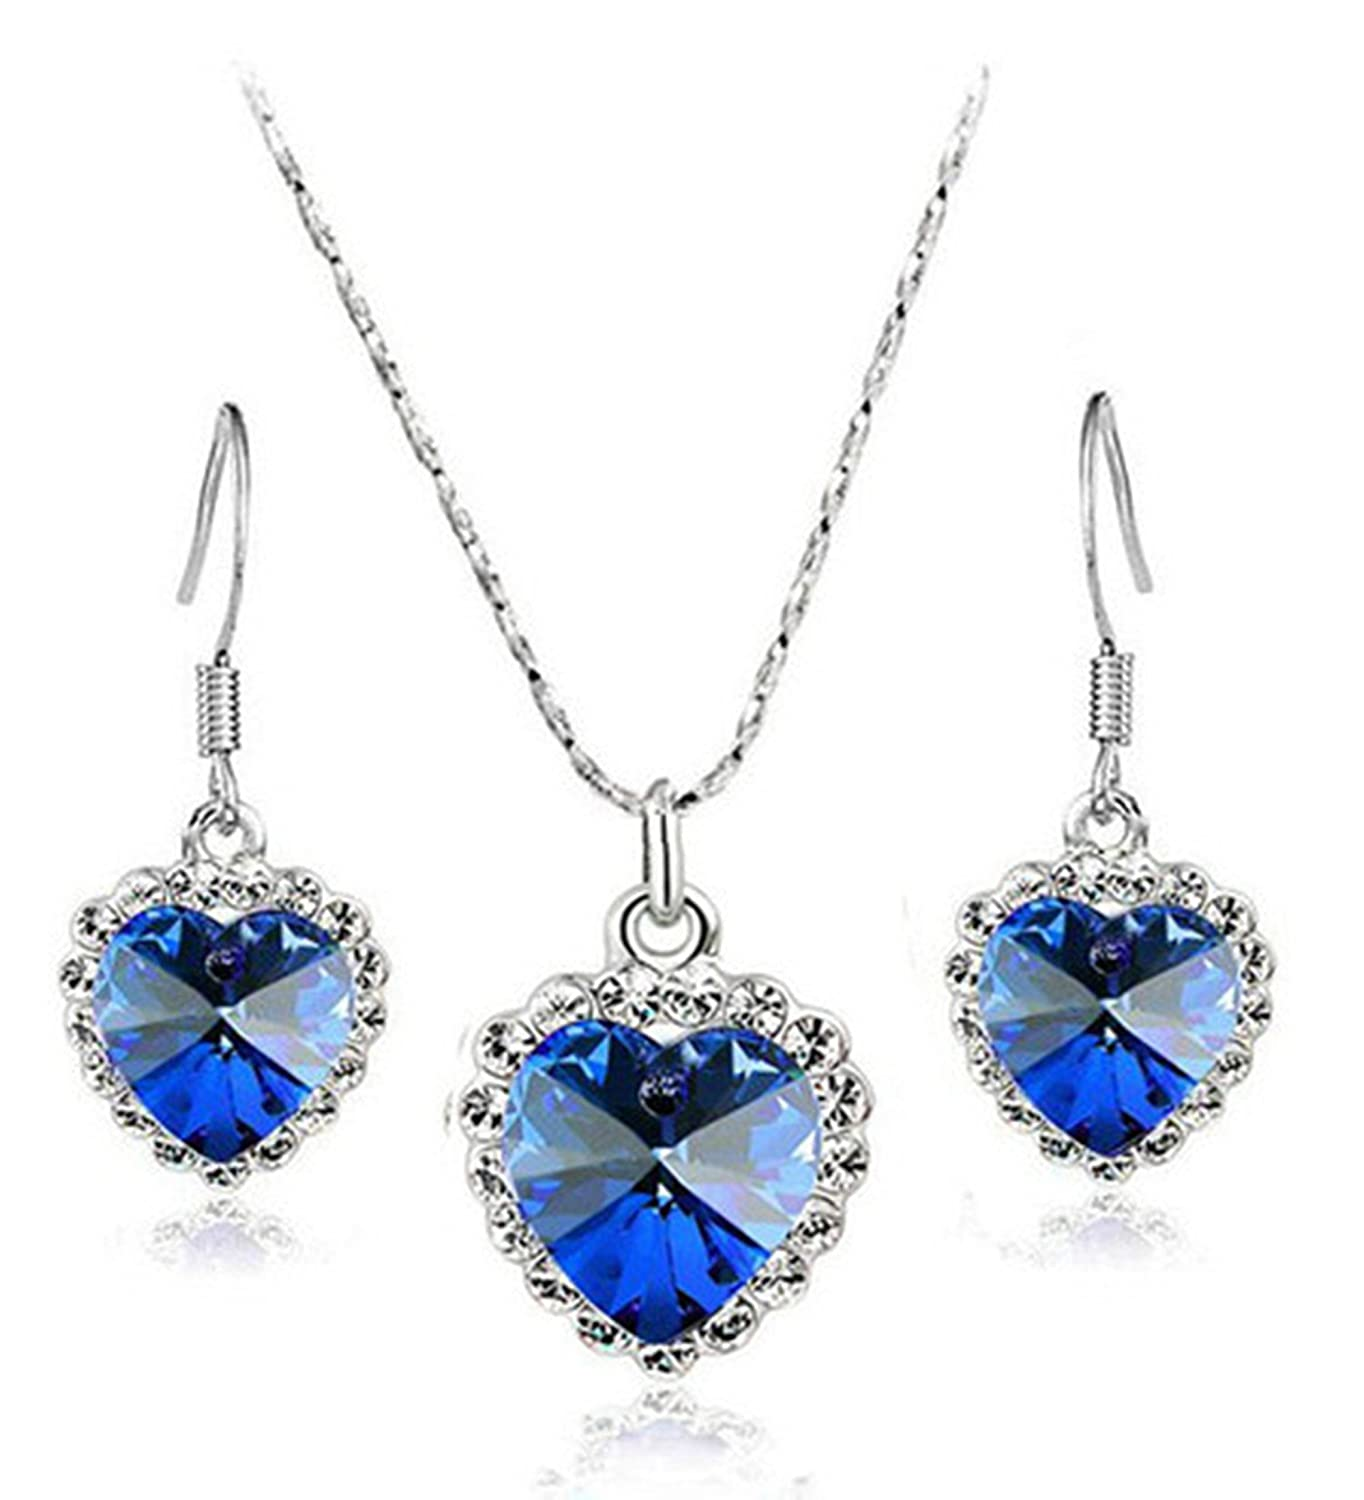 Two Set jewelry pendants necklace and earrings Crystal Heart of